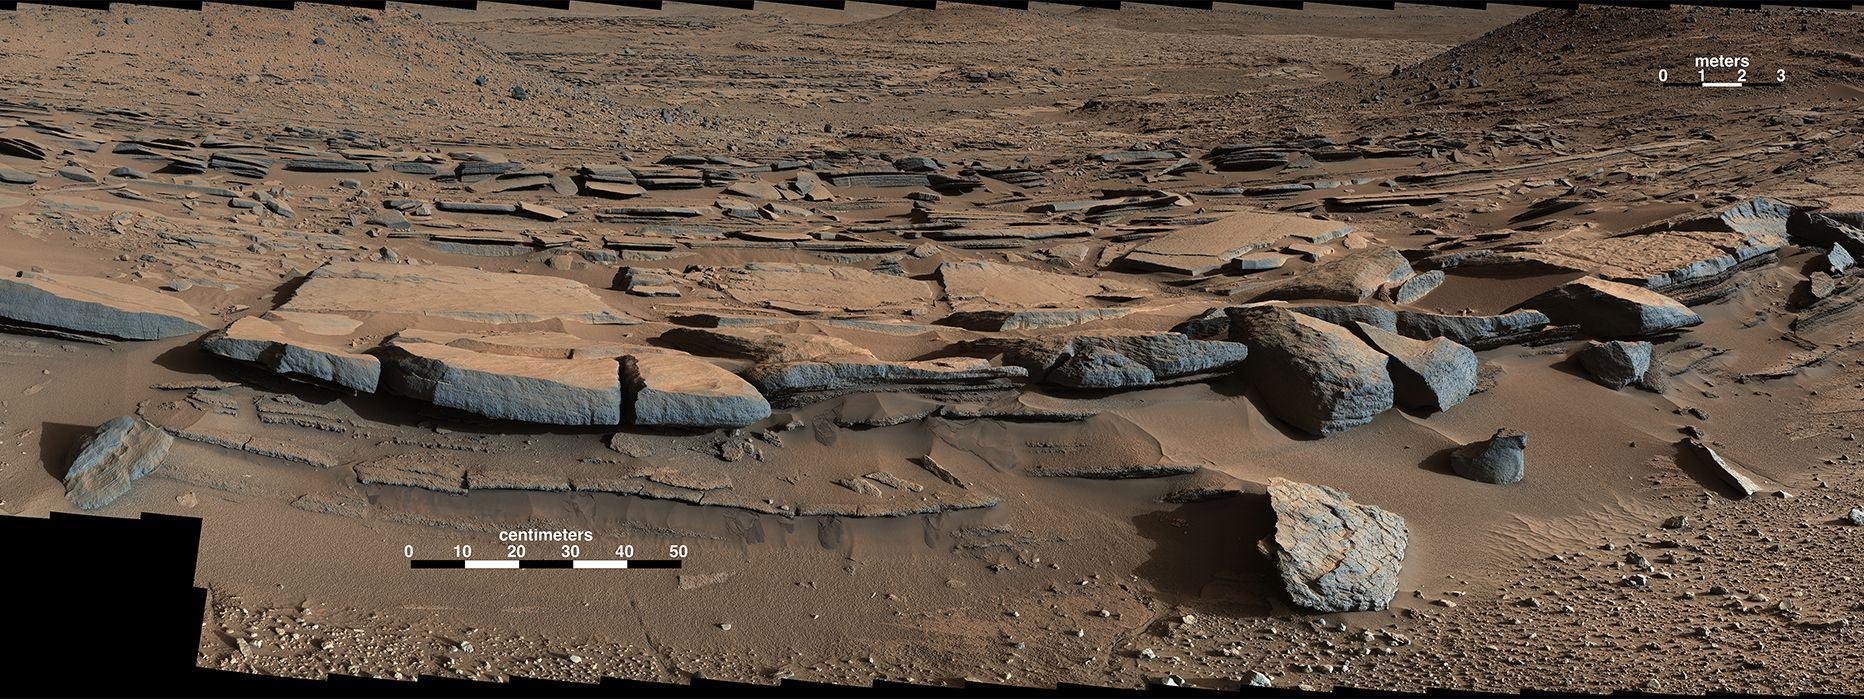 path curiosity rover gale crater - photo #35